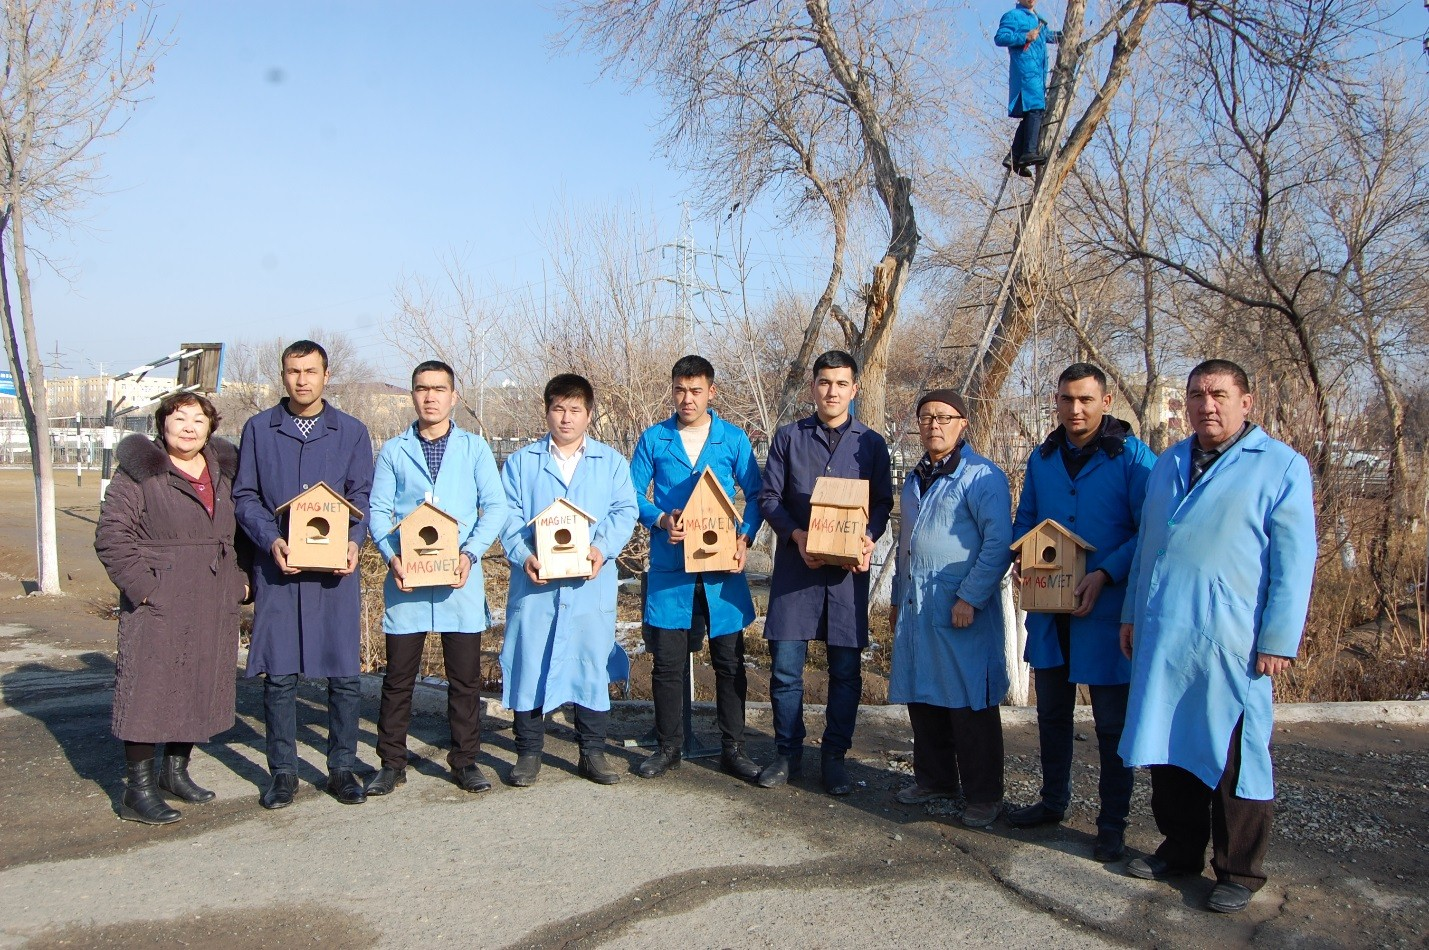 erasmus1 - Participants of Erasmus+ MAGNET project and students of NukSPI showed their concern for birds and hanged the nesting boxes on the trees of the territory adjacent to the Physics-Mathematics department.